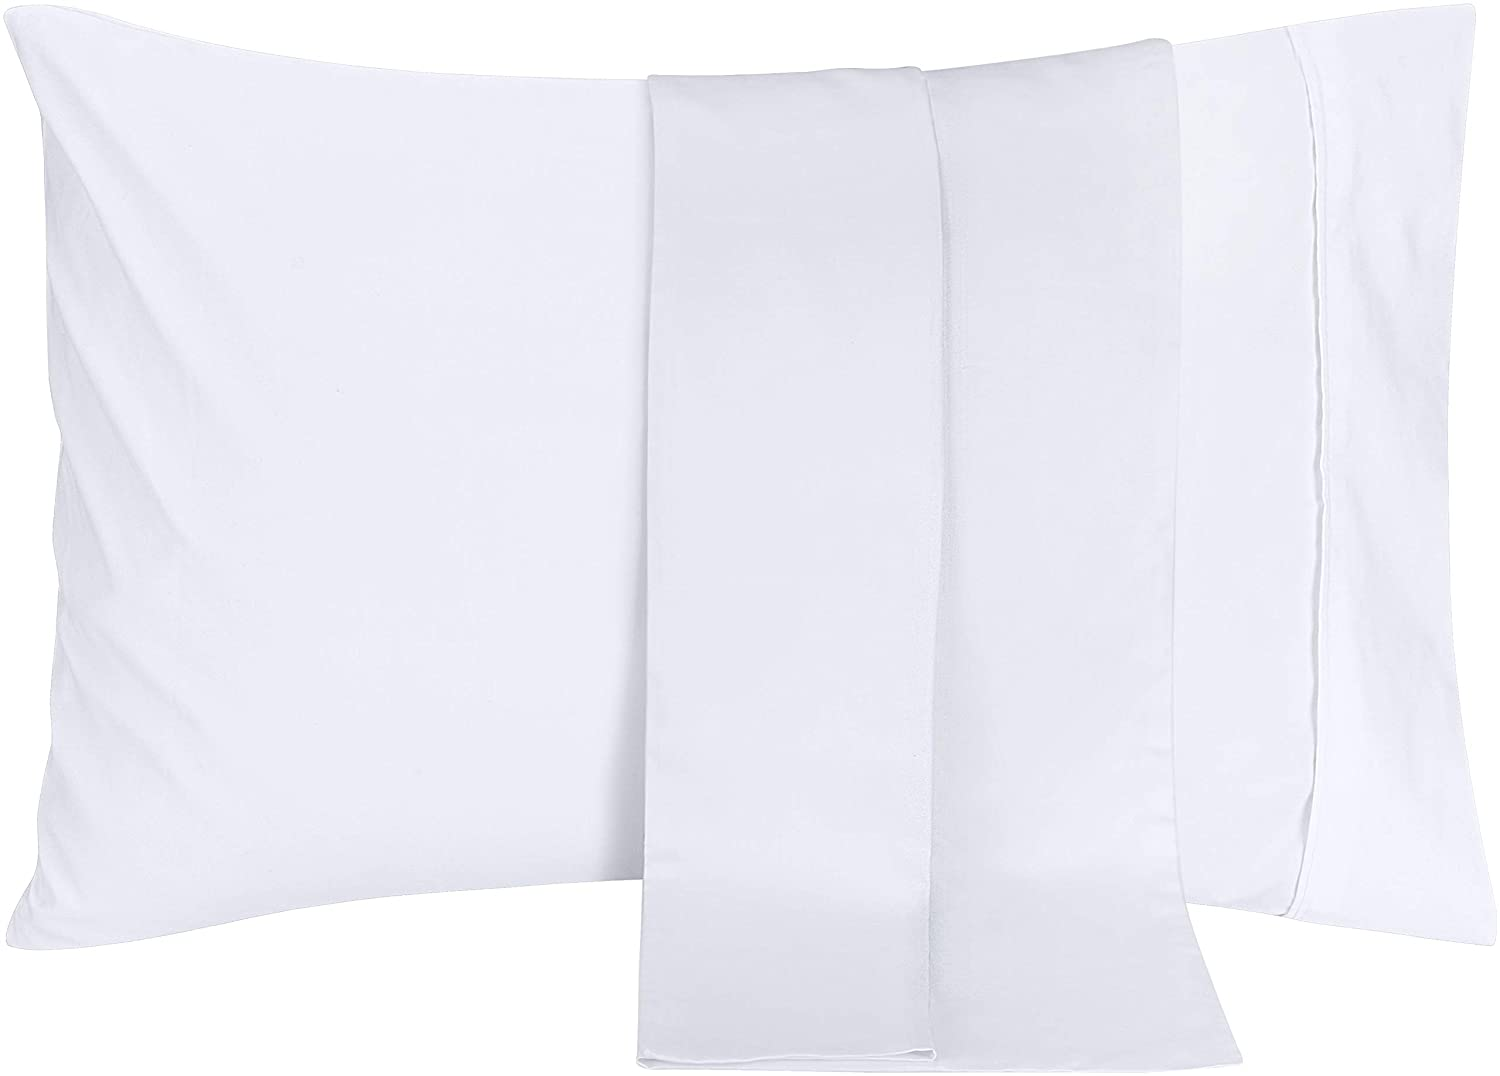 Utopia Bedding Pillowcases 2 Pack – (Queen, White) - Brushed Microfiber Pillow Covers